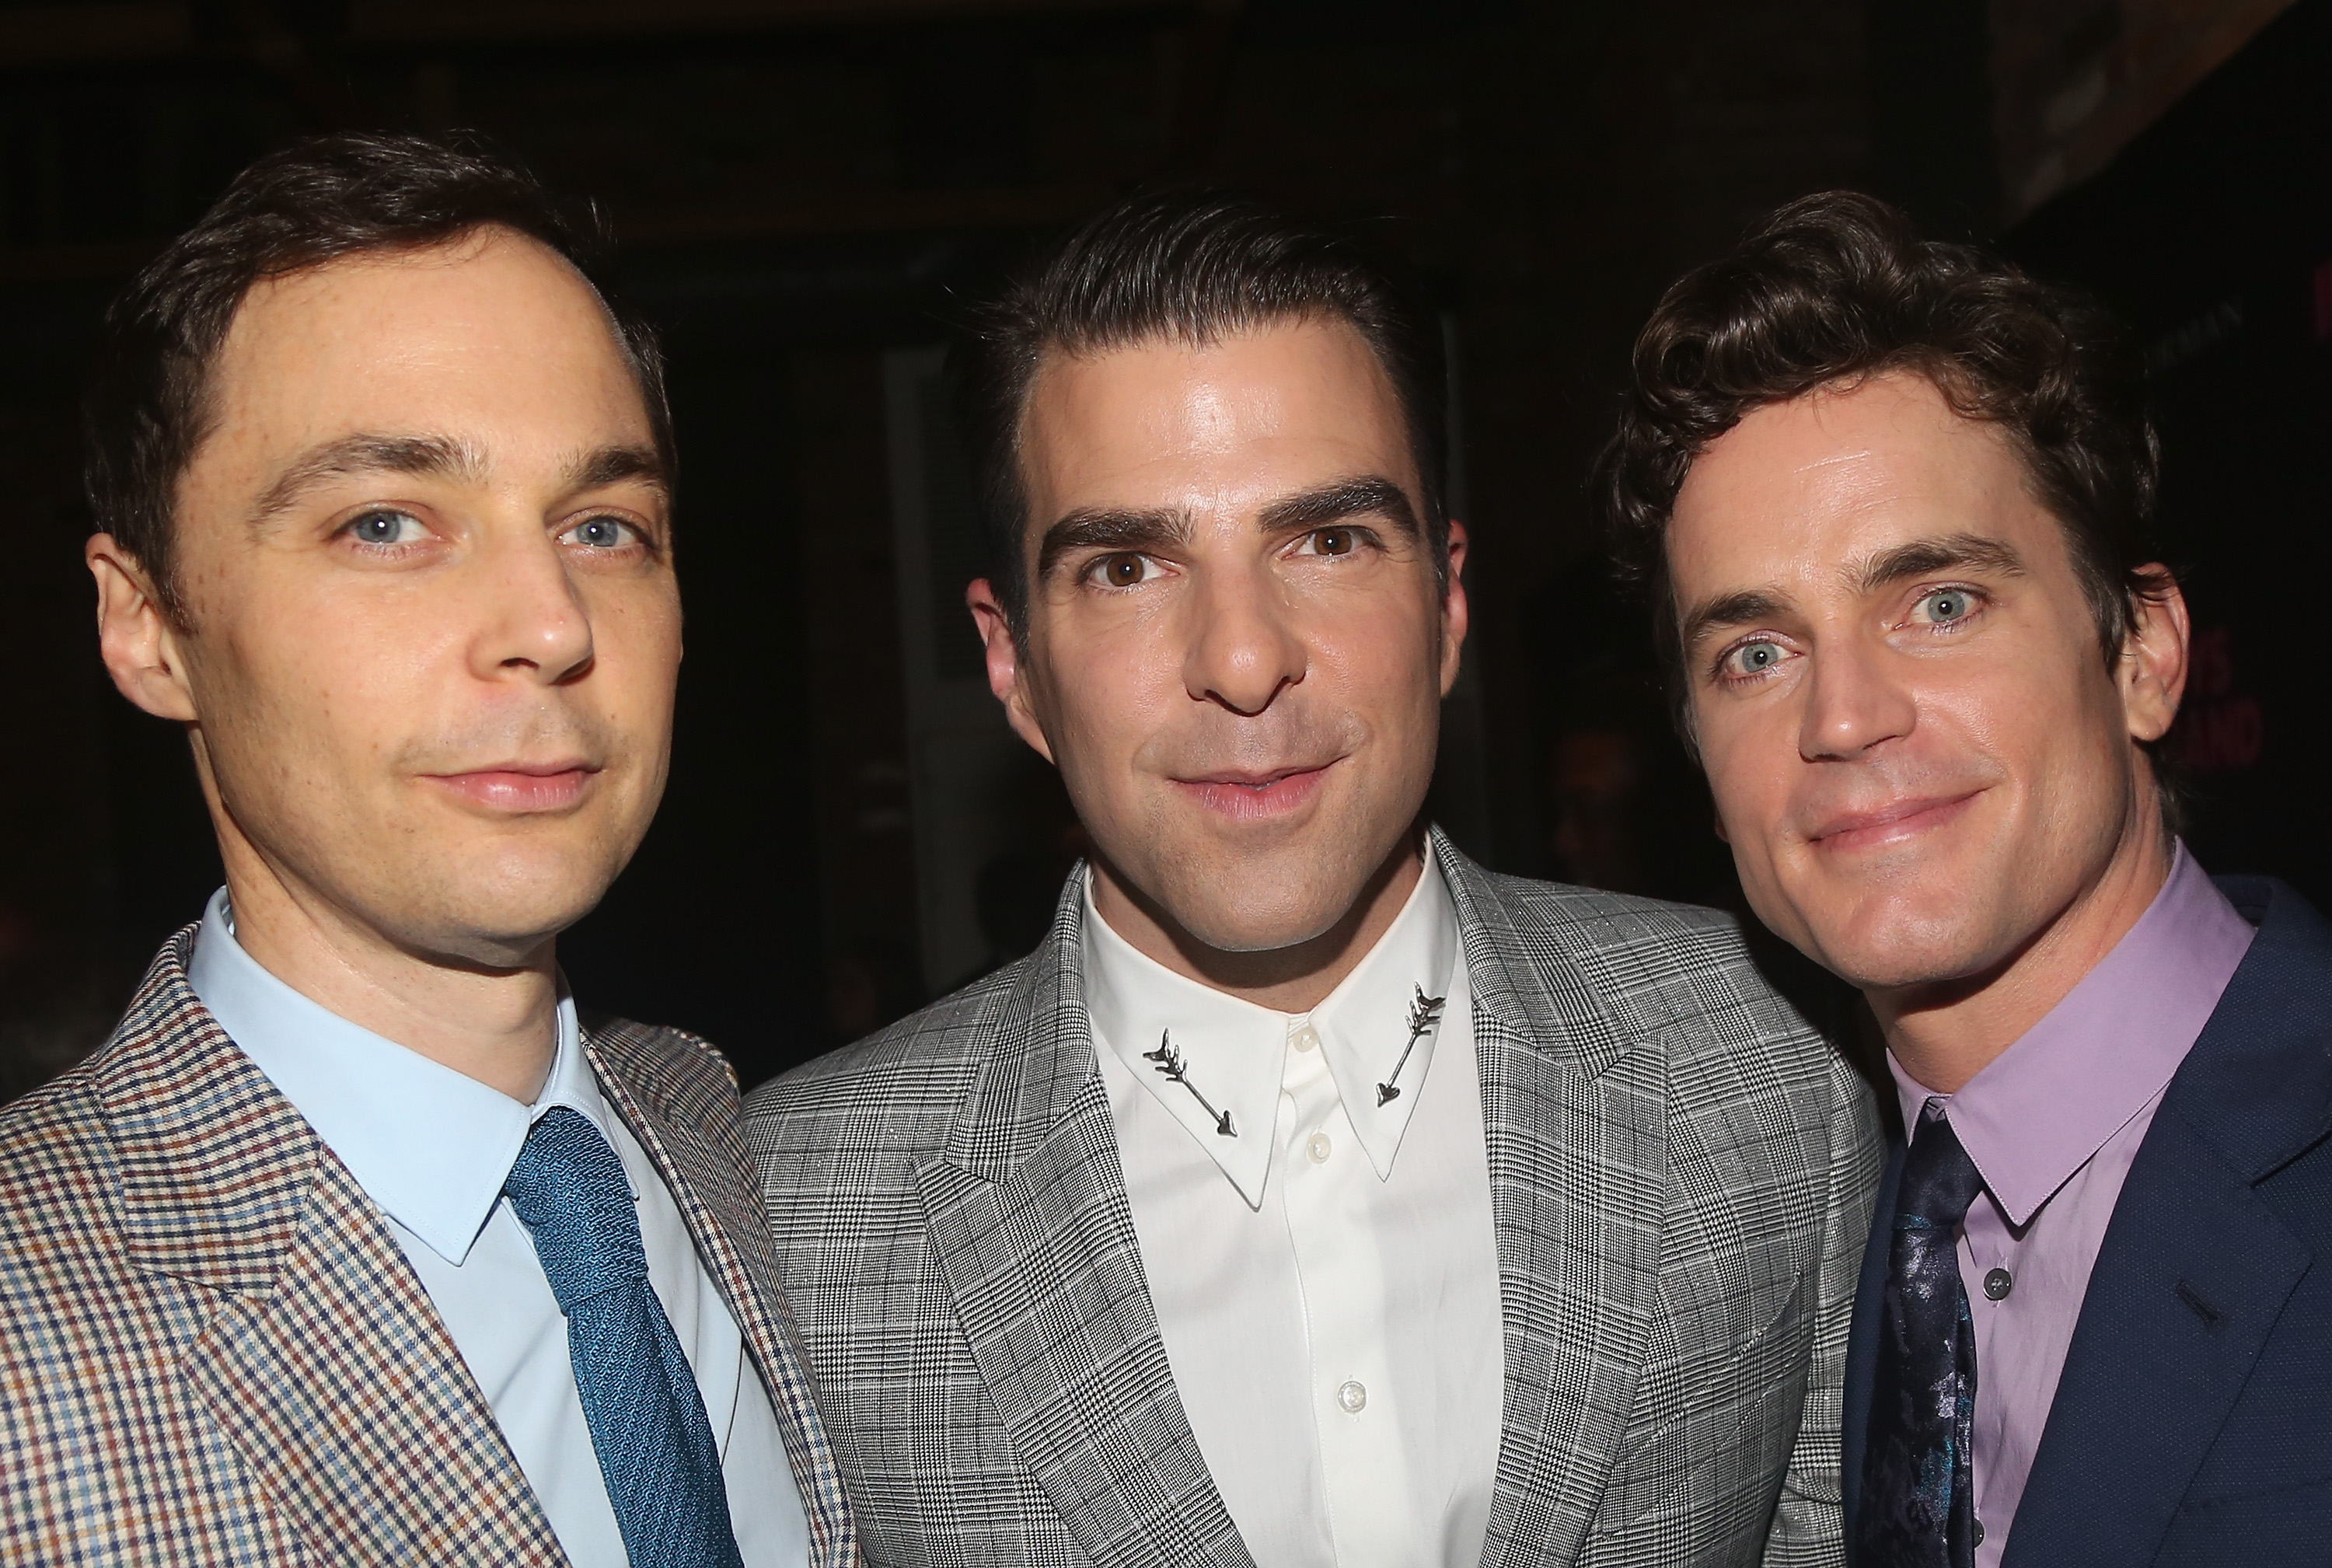 Jim Parsons Leads the Broadway Cast of 'The Boys in the Band' in a Netflix Film Adaptation